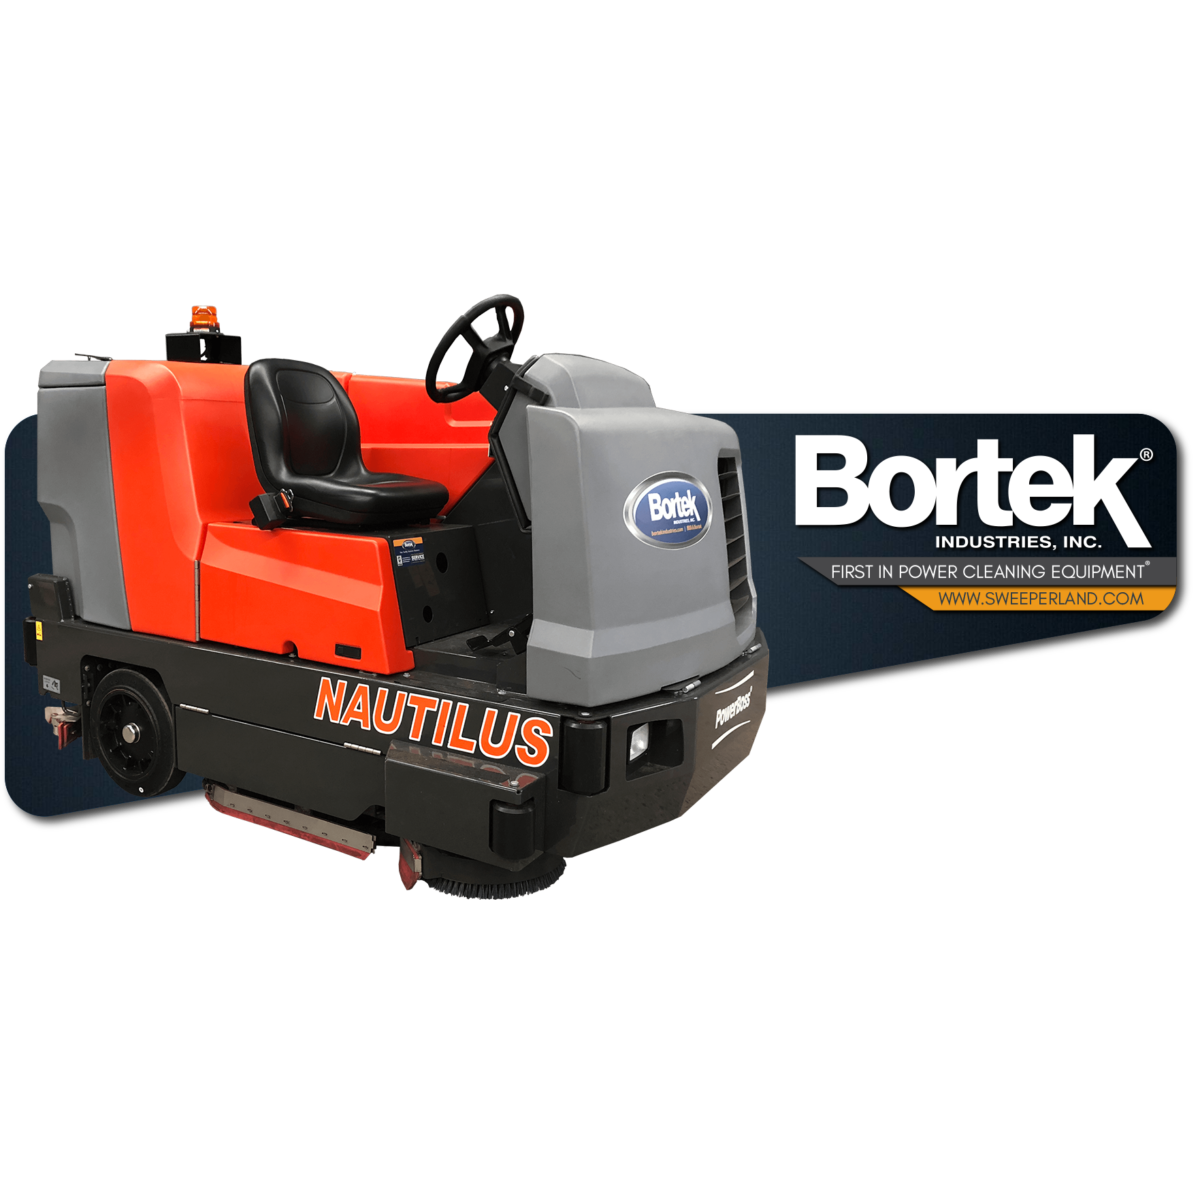 PowerBoss Nautilus Ride-On Scrubber/Sweeper Rental